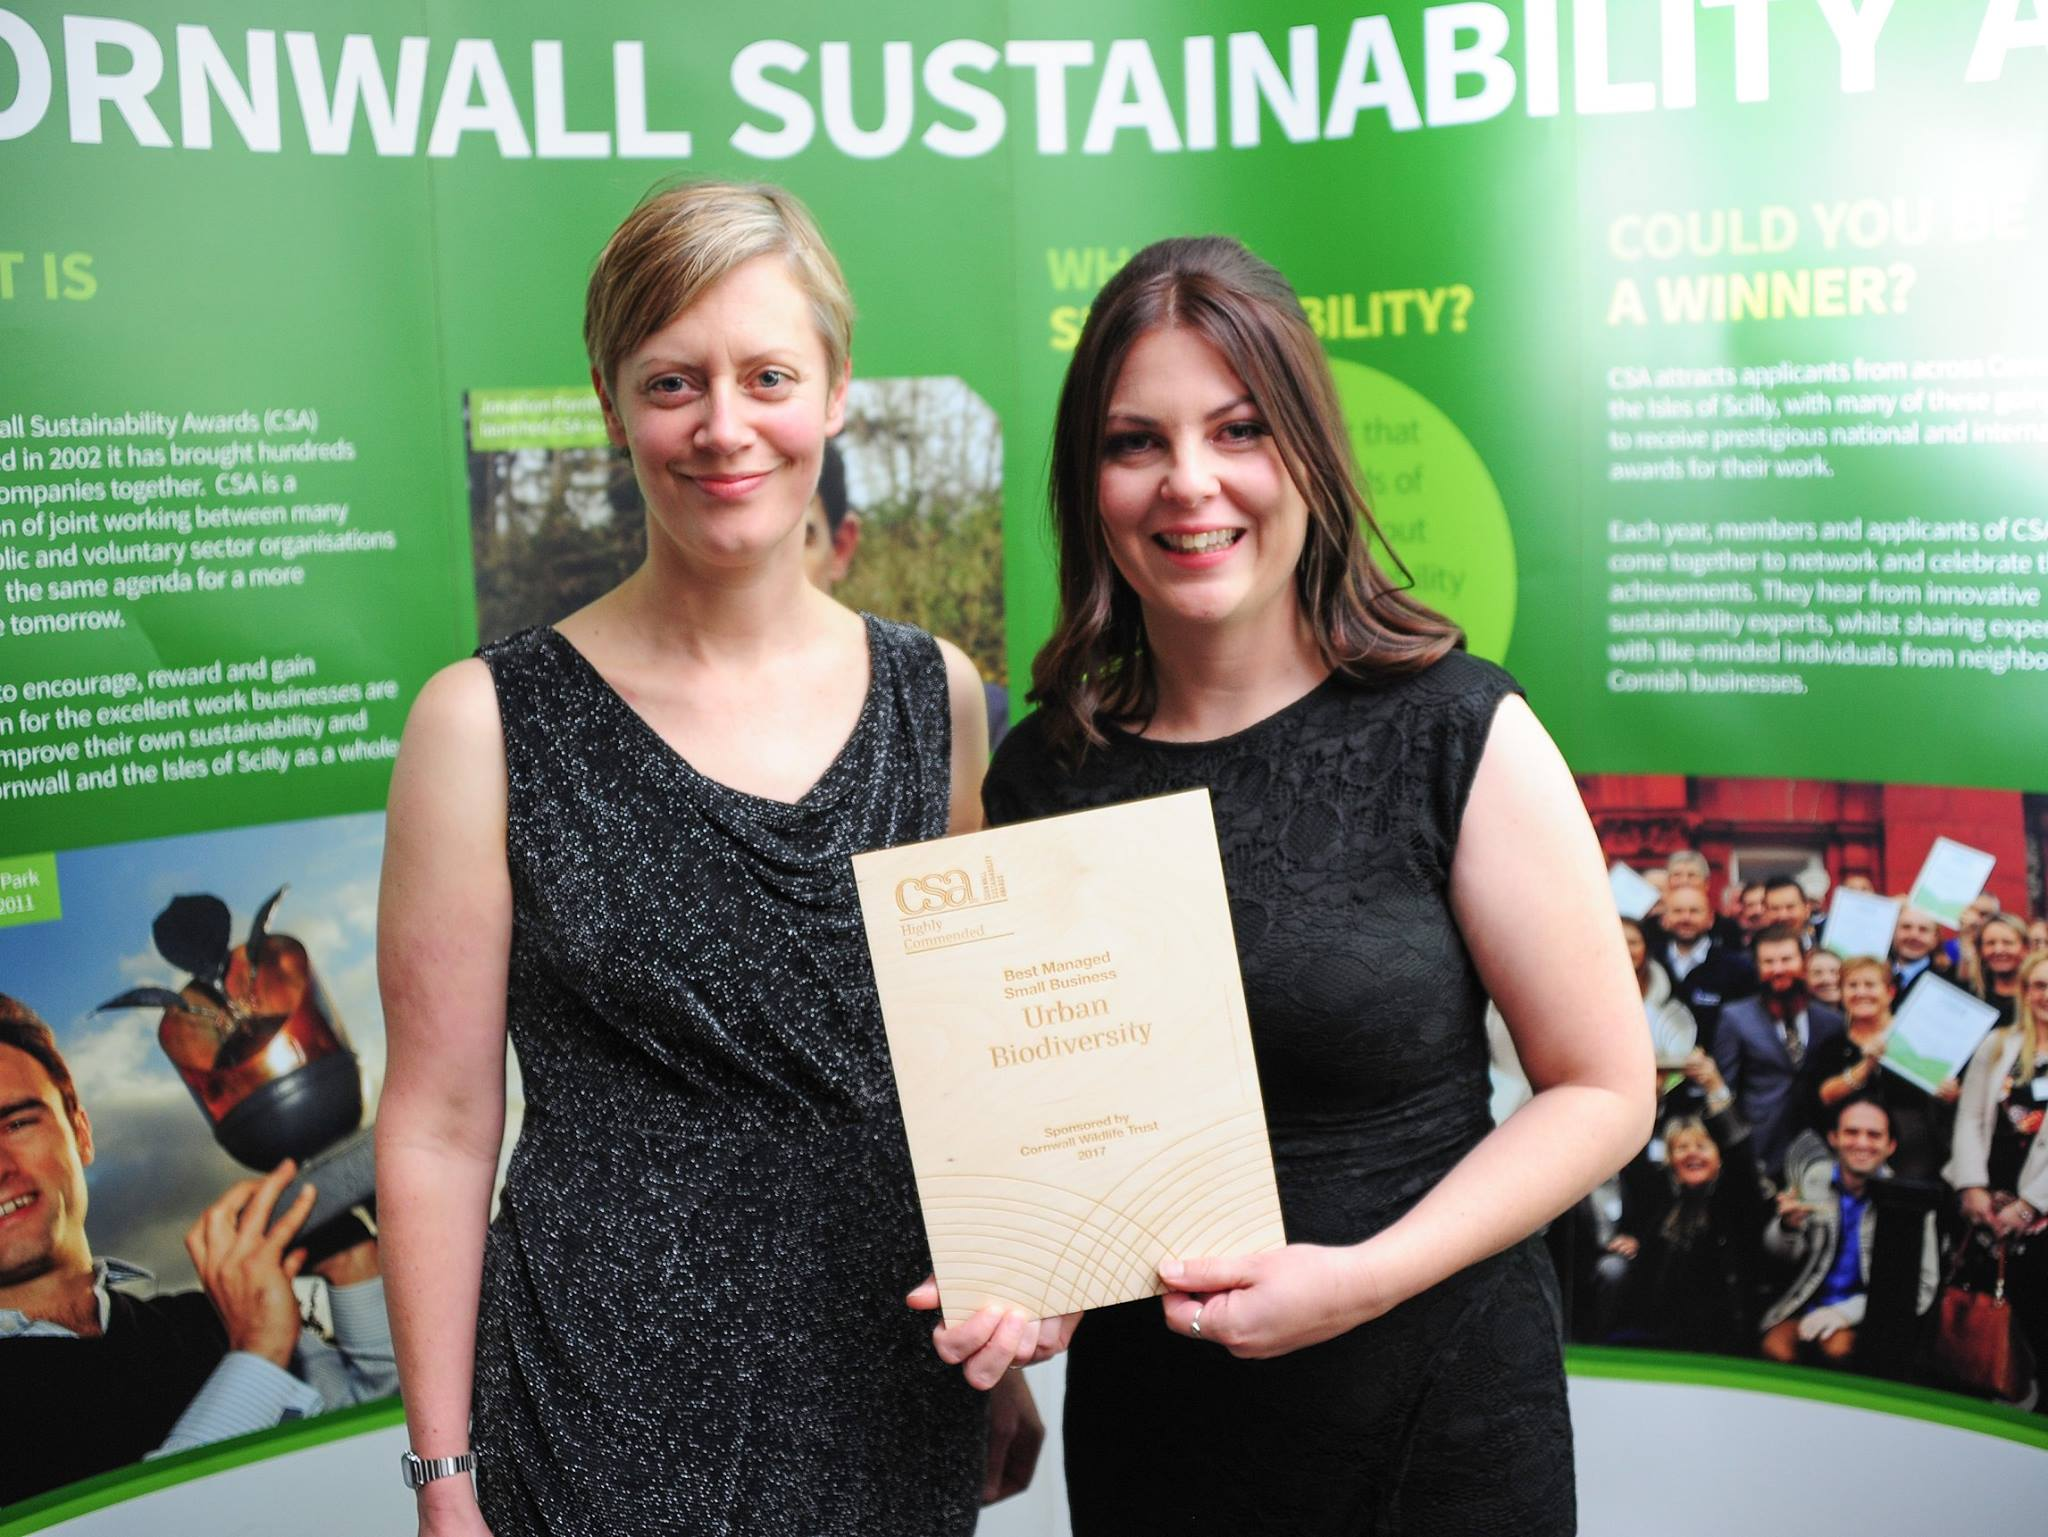 Newquay Community Orchard has won the Best Contribution to Sustainability